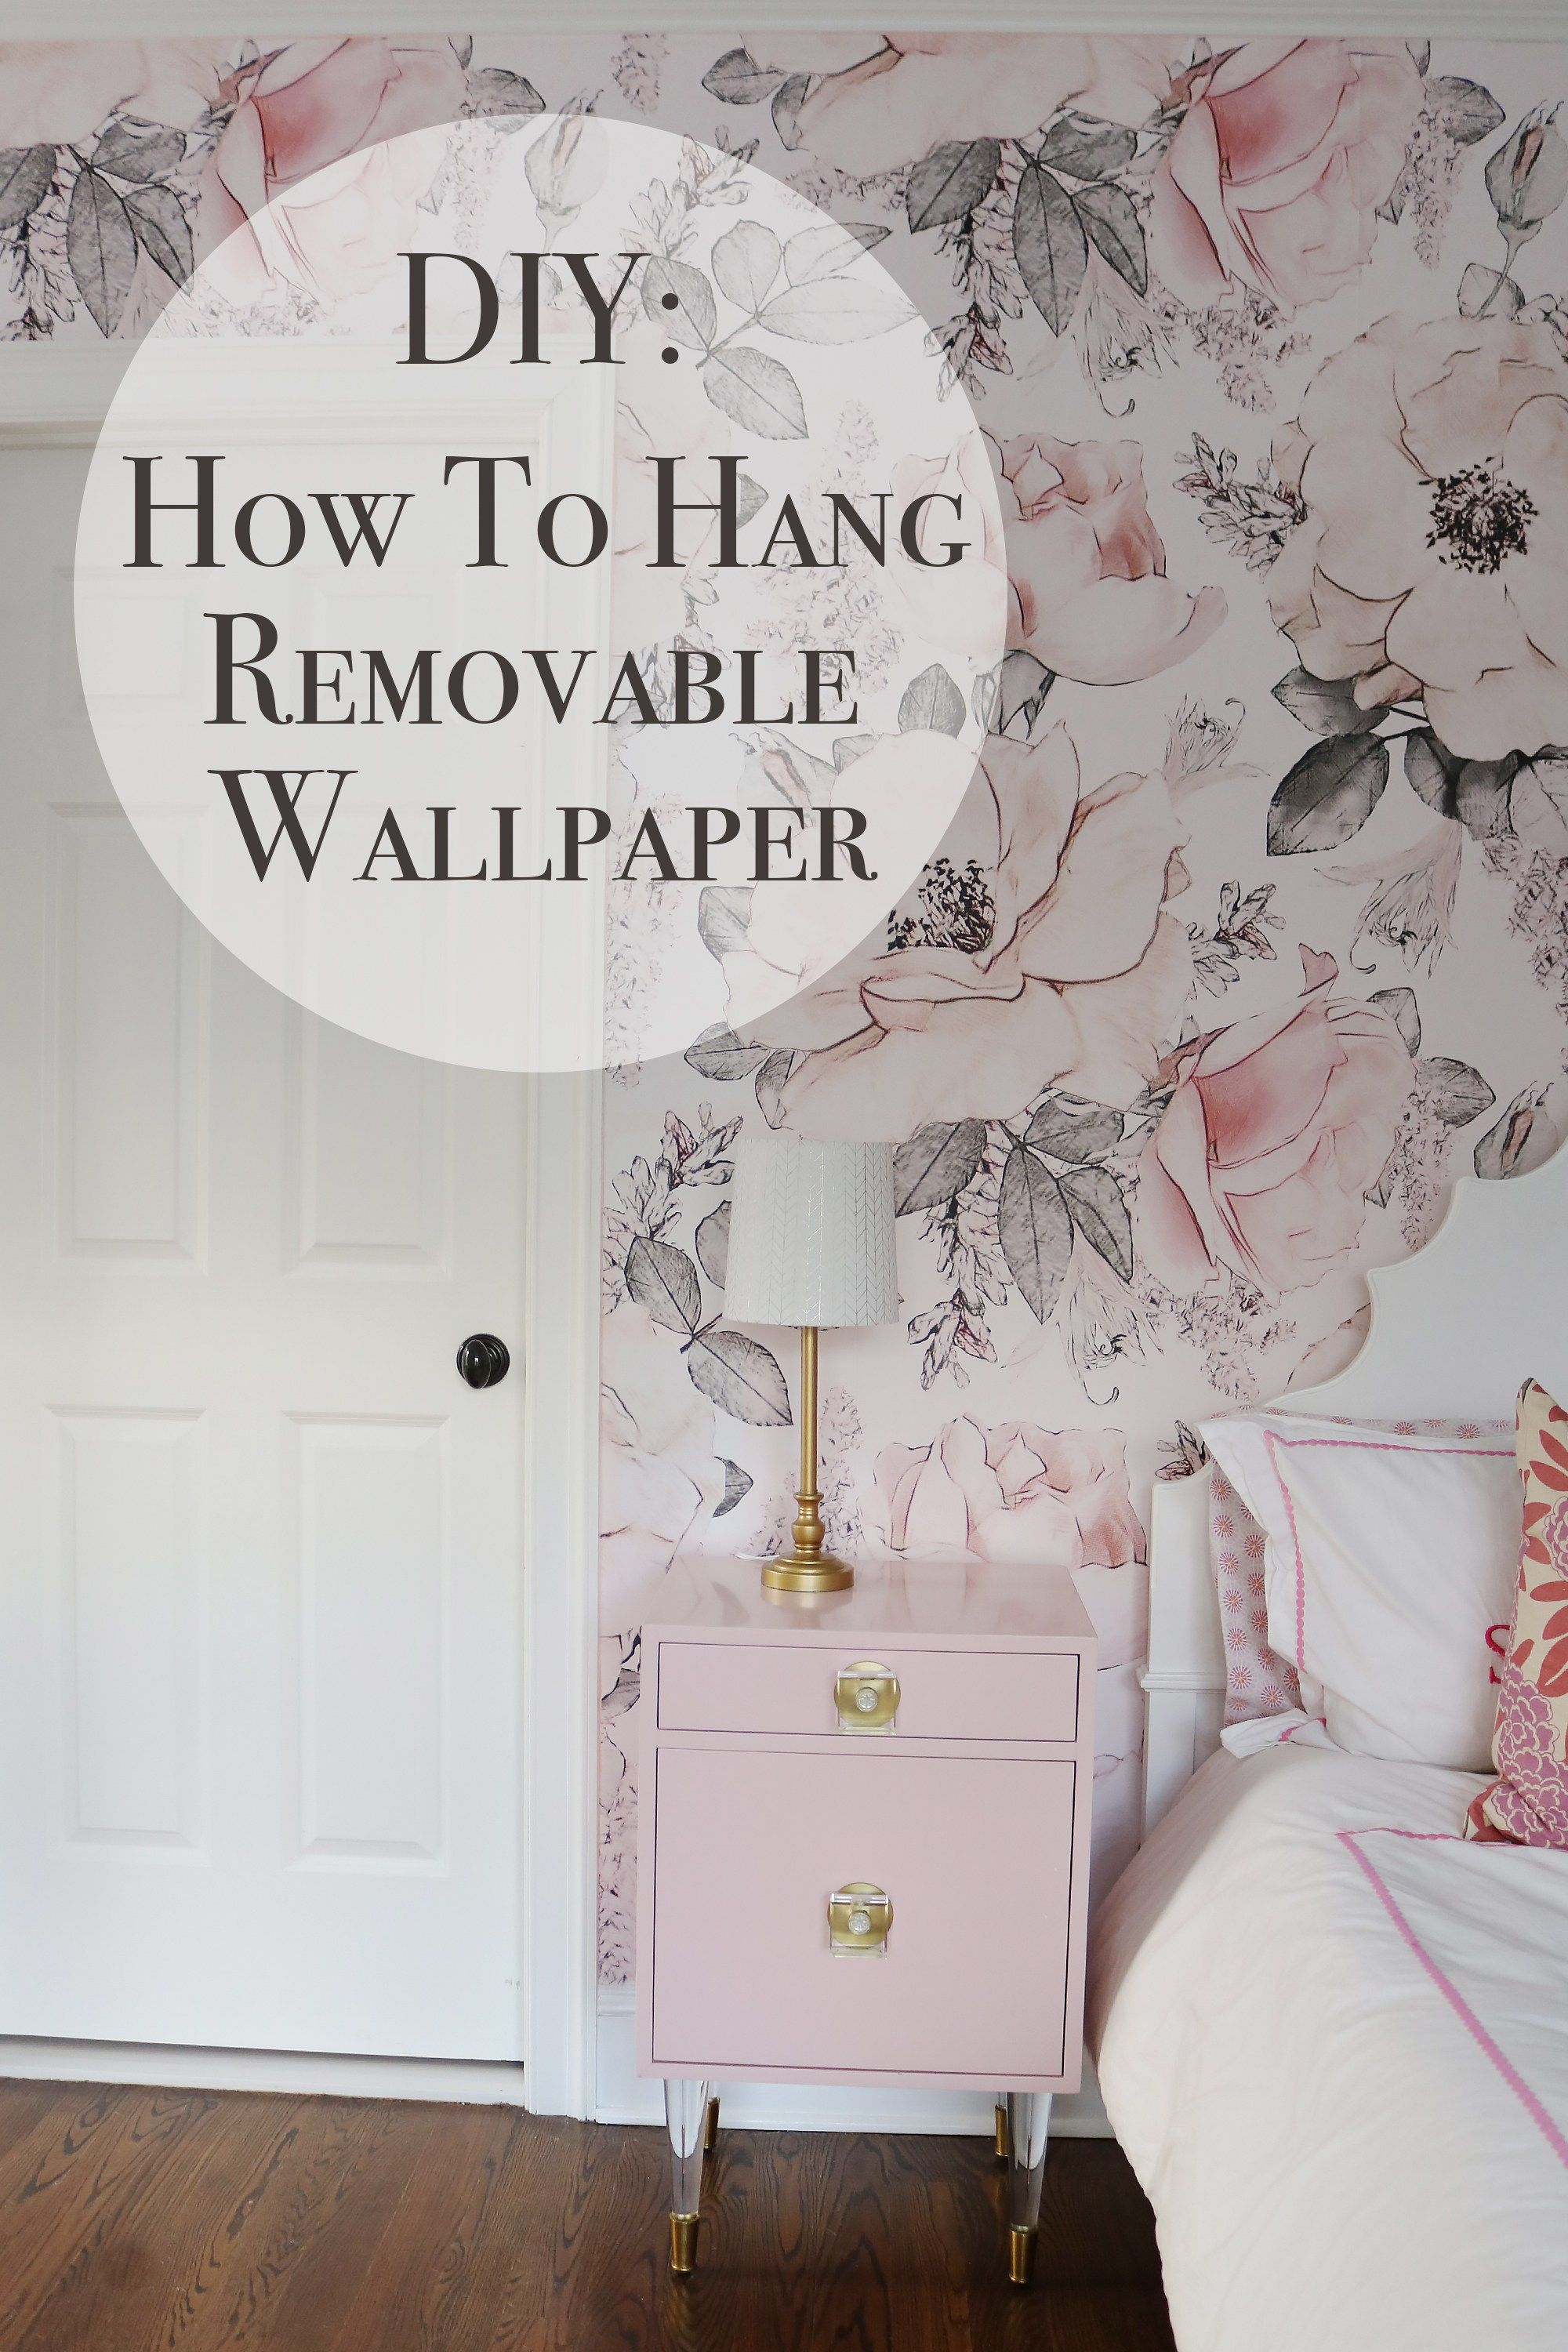 How To Hang Removable Wallpaper Darling Darleen A Lifestyle Design Blog In 2020 Temporary Wallpaper Bedroom Removable Wallpaper Diy Renters Decorating